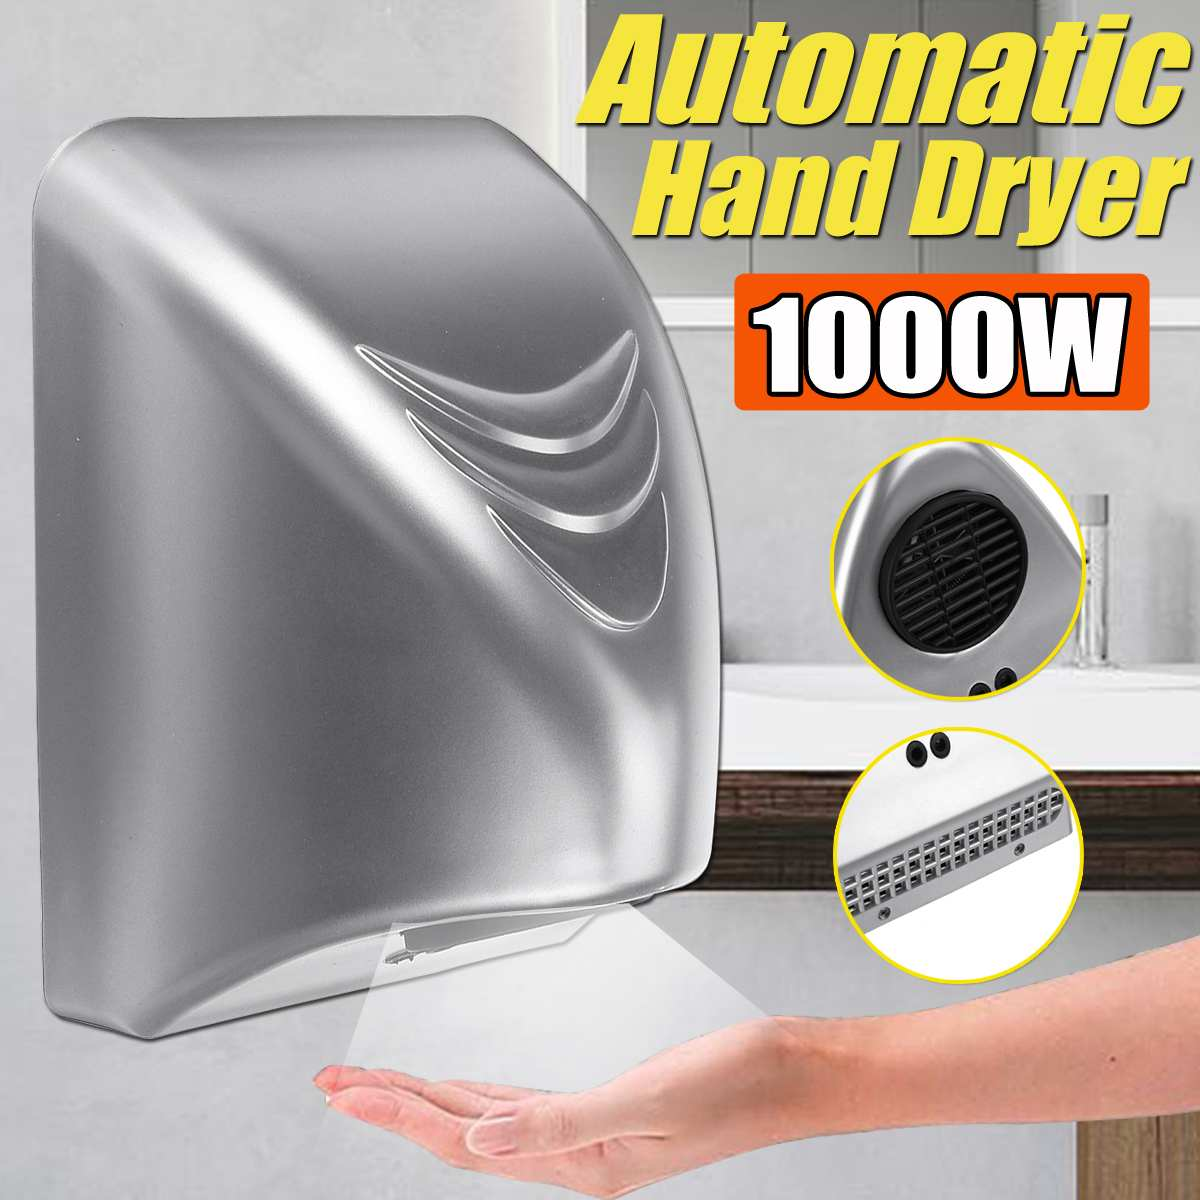 1000W Powerful Hand Dryer Hotel Commercial Hand Dryer Electric Automatic Induction Hands Drying Device Bathroom Winding Machine